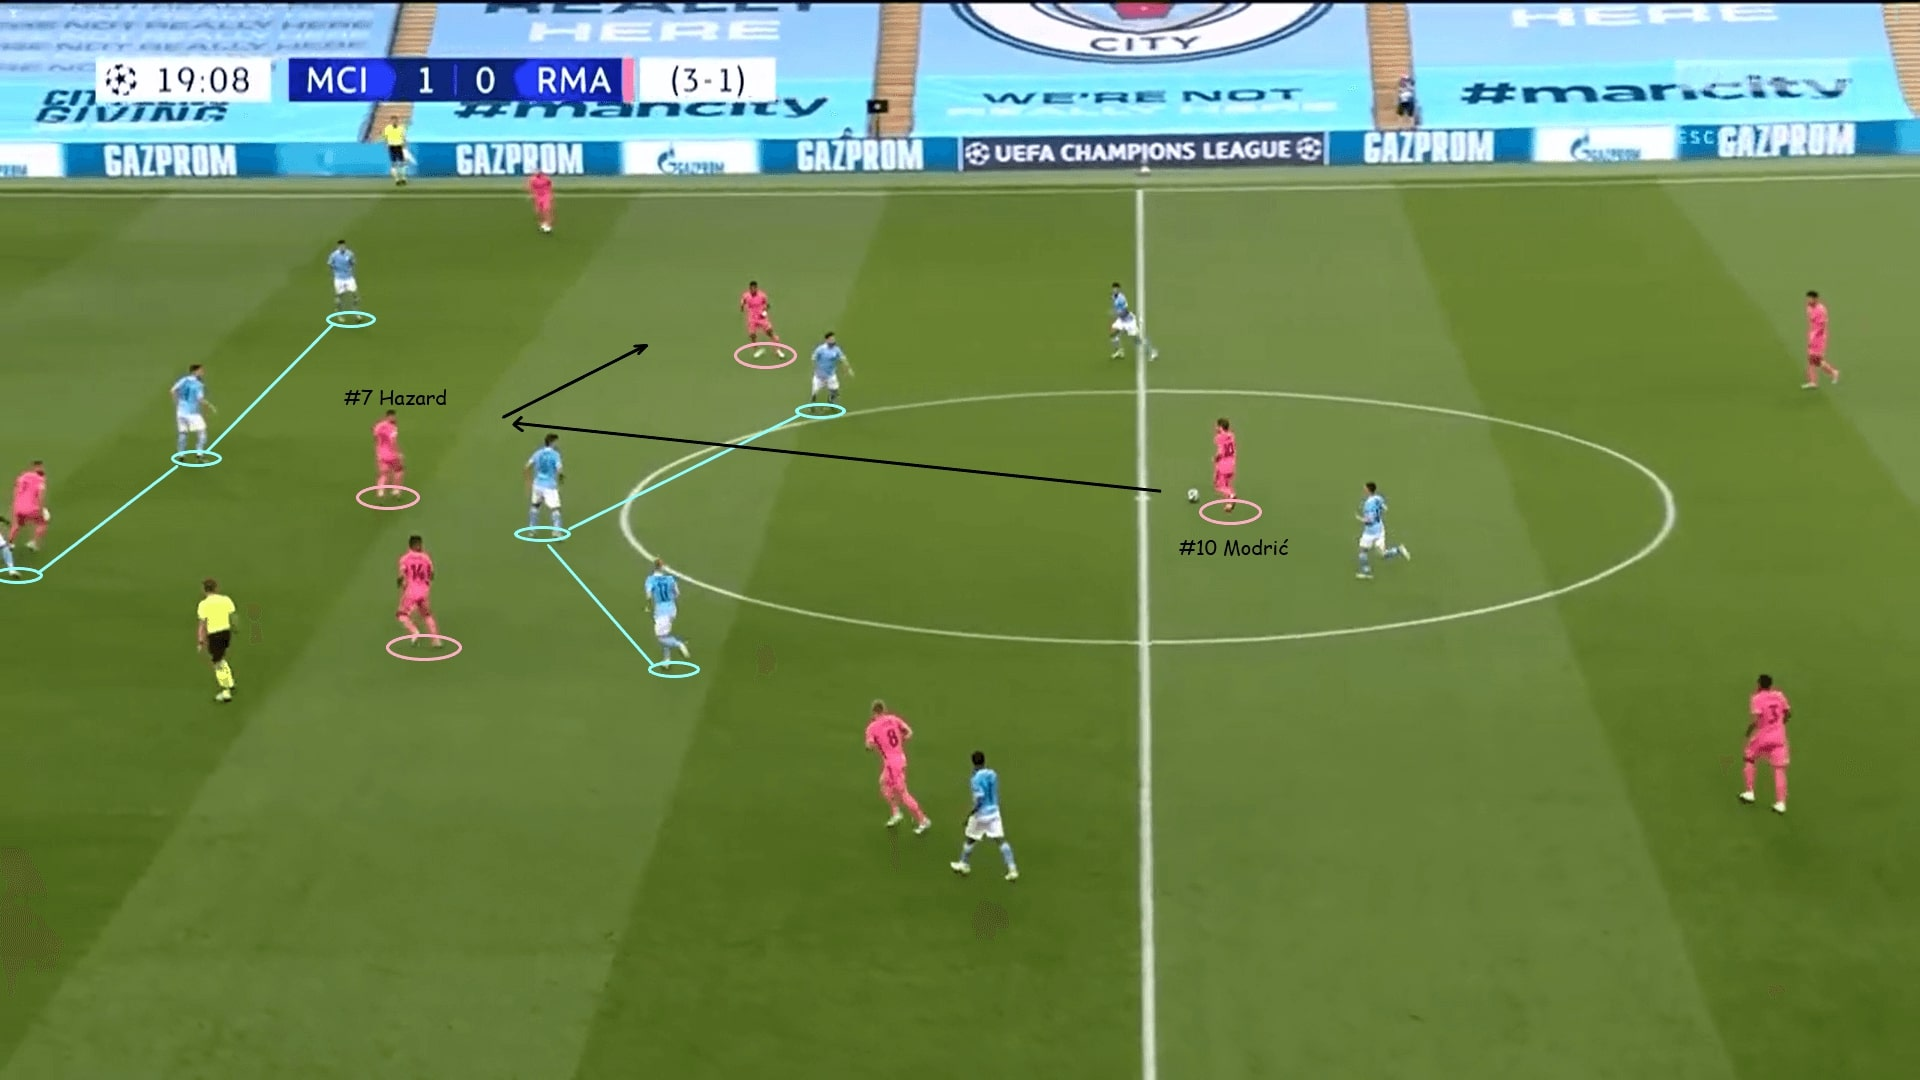 UEFA Champions League 2019/20: Manchester City vs Real Madrid - tactical analysis tactics